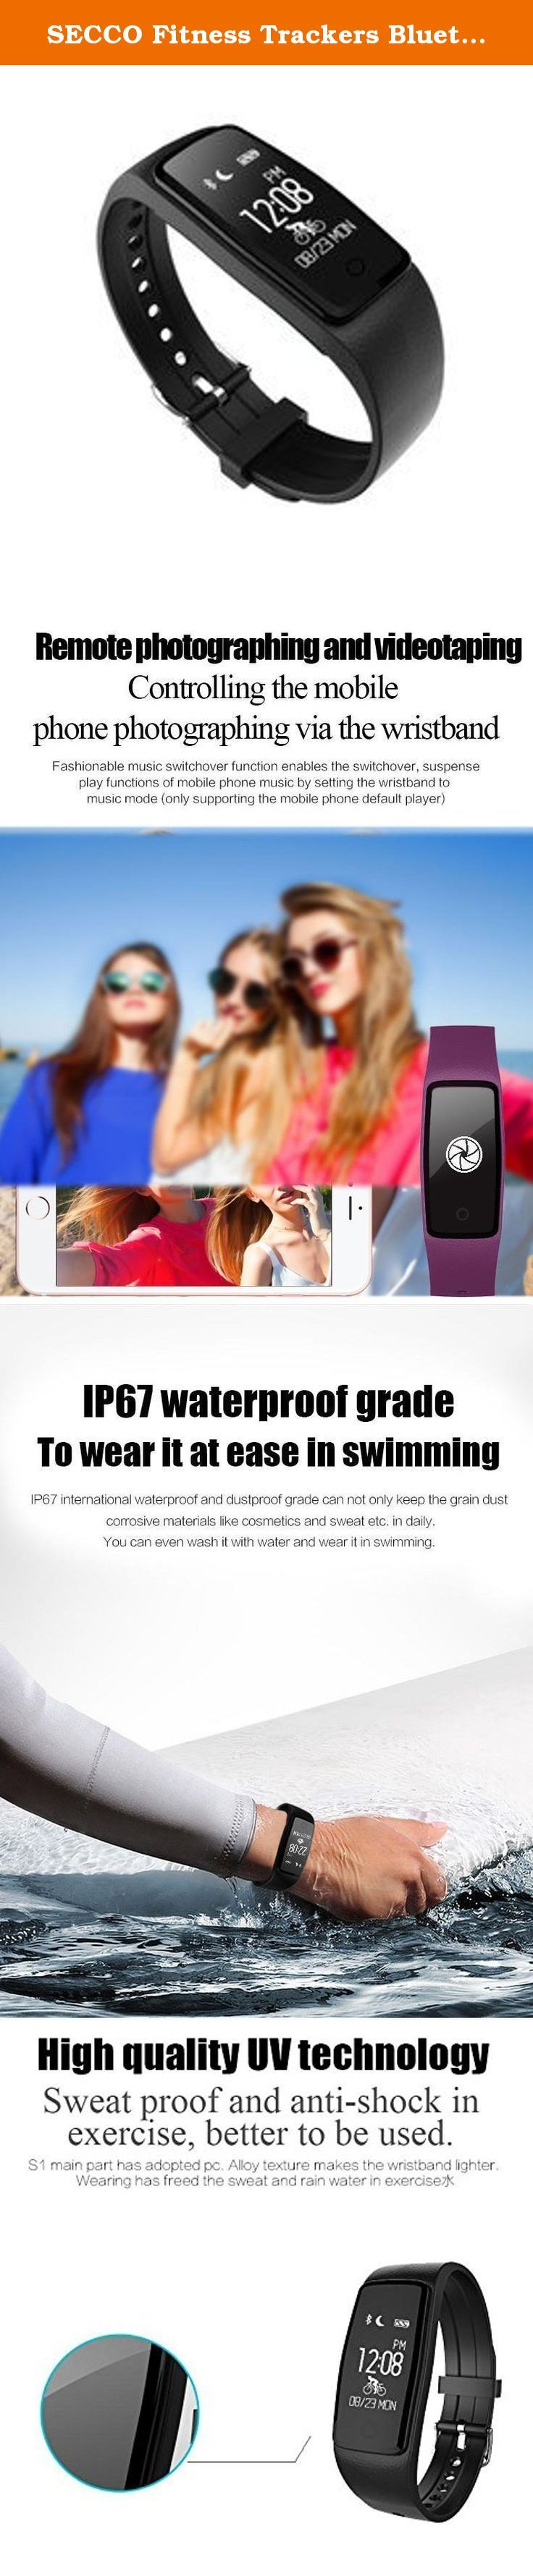 SECCO Fitness Trackers Bluetooth Smart Wristband Heart Rate Monitor IP67 Waterproof Smartband Bracelet For Android IOS Phone. Fitness Tracker Sleep Tracker Mood Tracker Push Message Answer Call Call Reminder Pedometer Remote Control Dial Call.